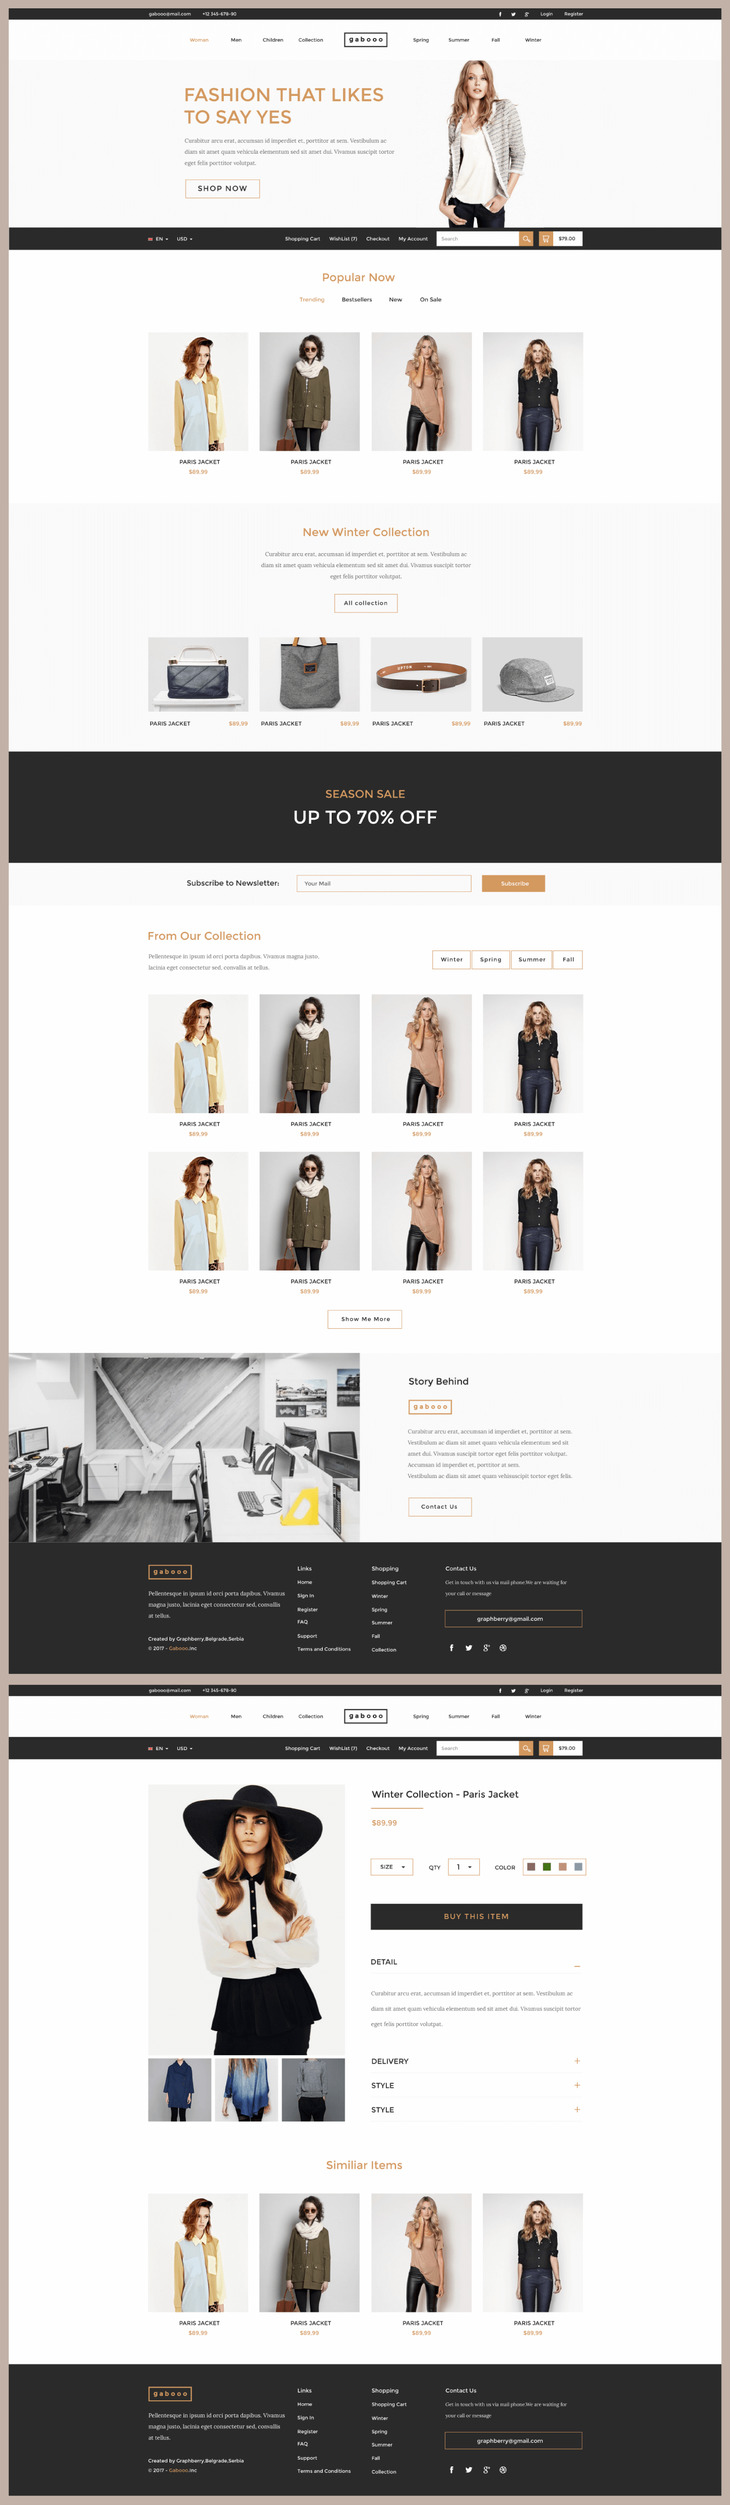 Gabooo - Fashion eCommerce Theme - graphberry.com